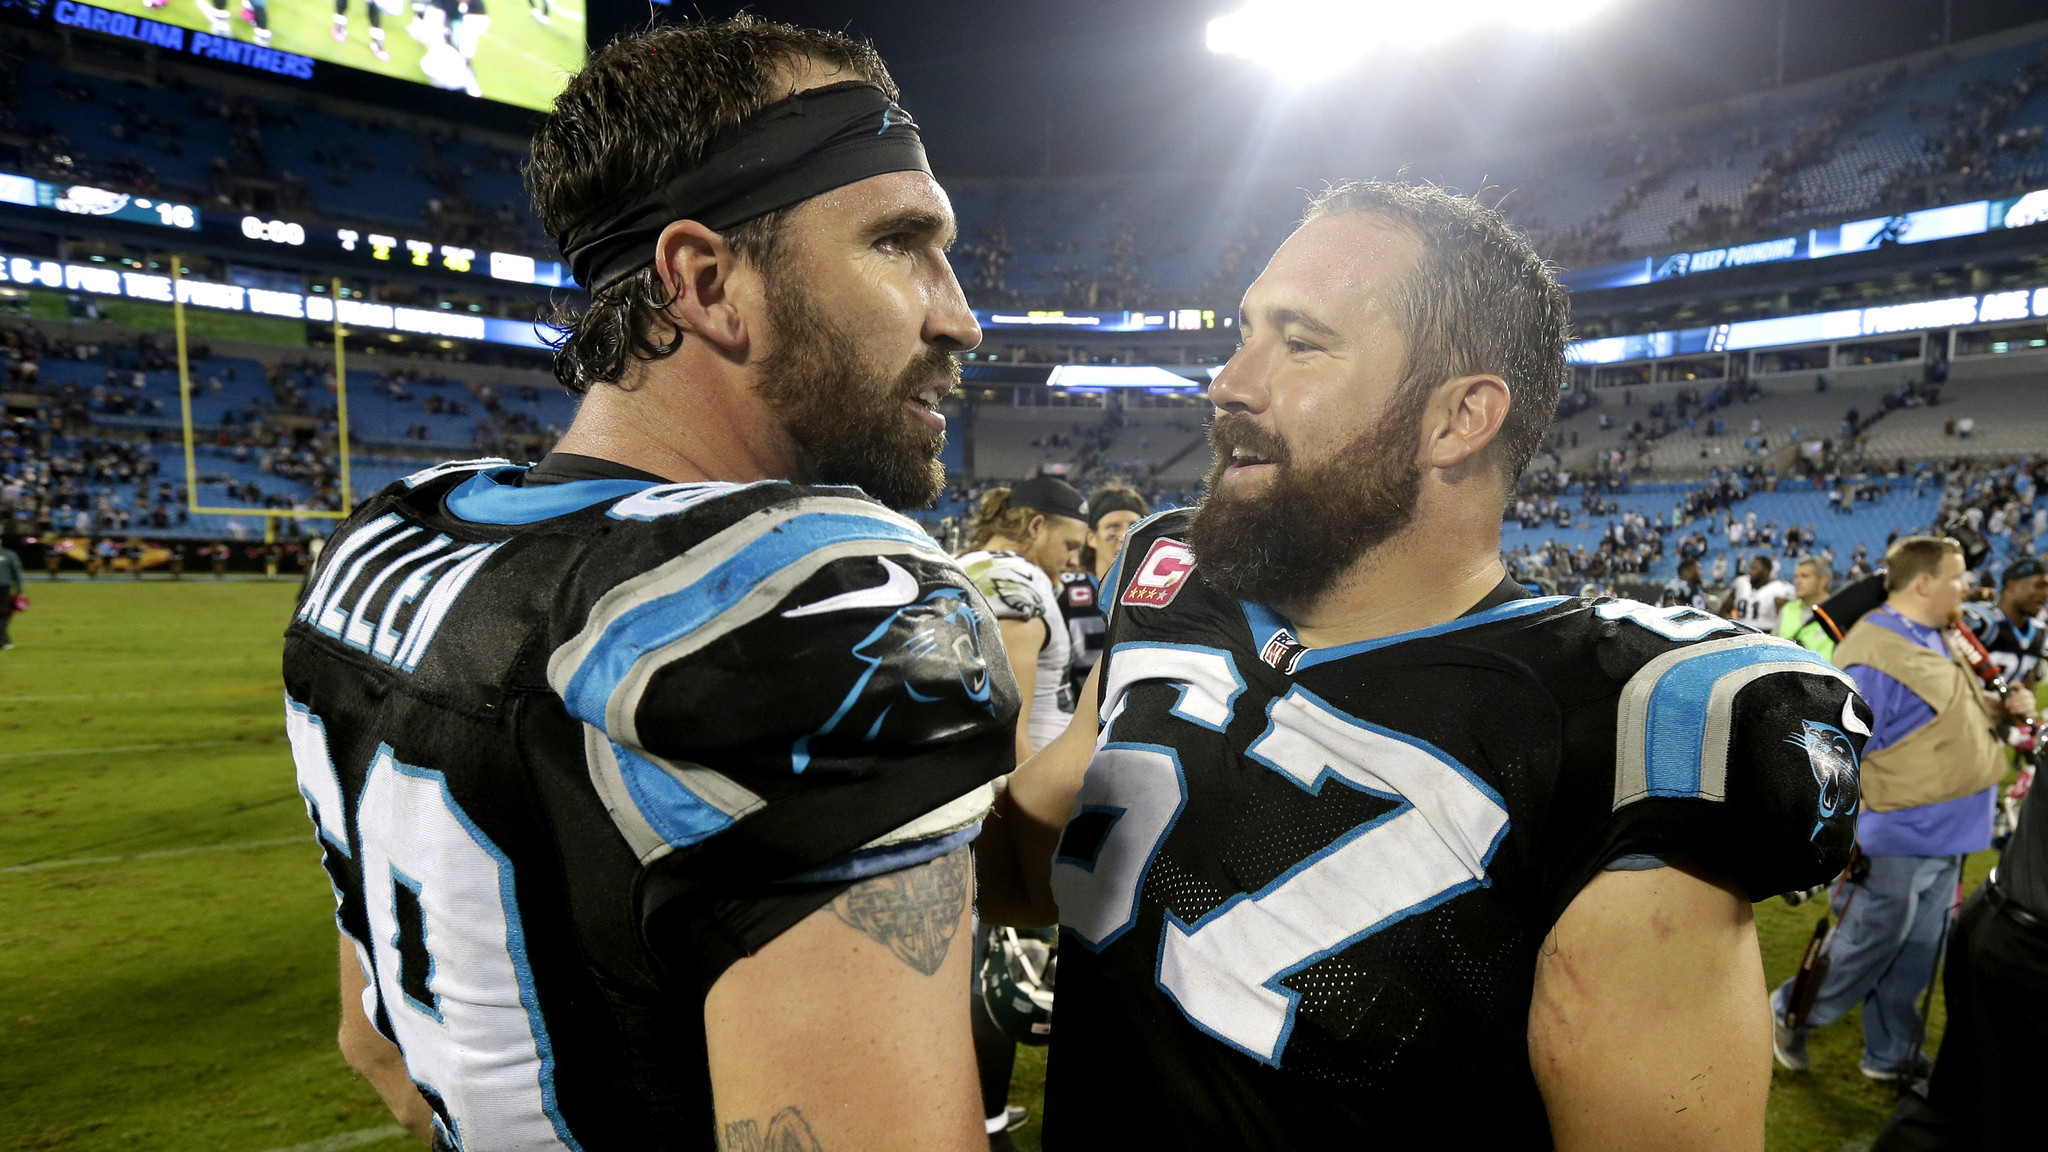 Ryan Kalil modestly does his job of helping the Carolina Panthers